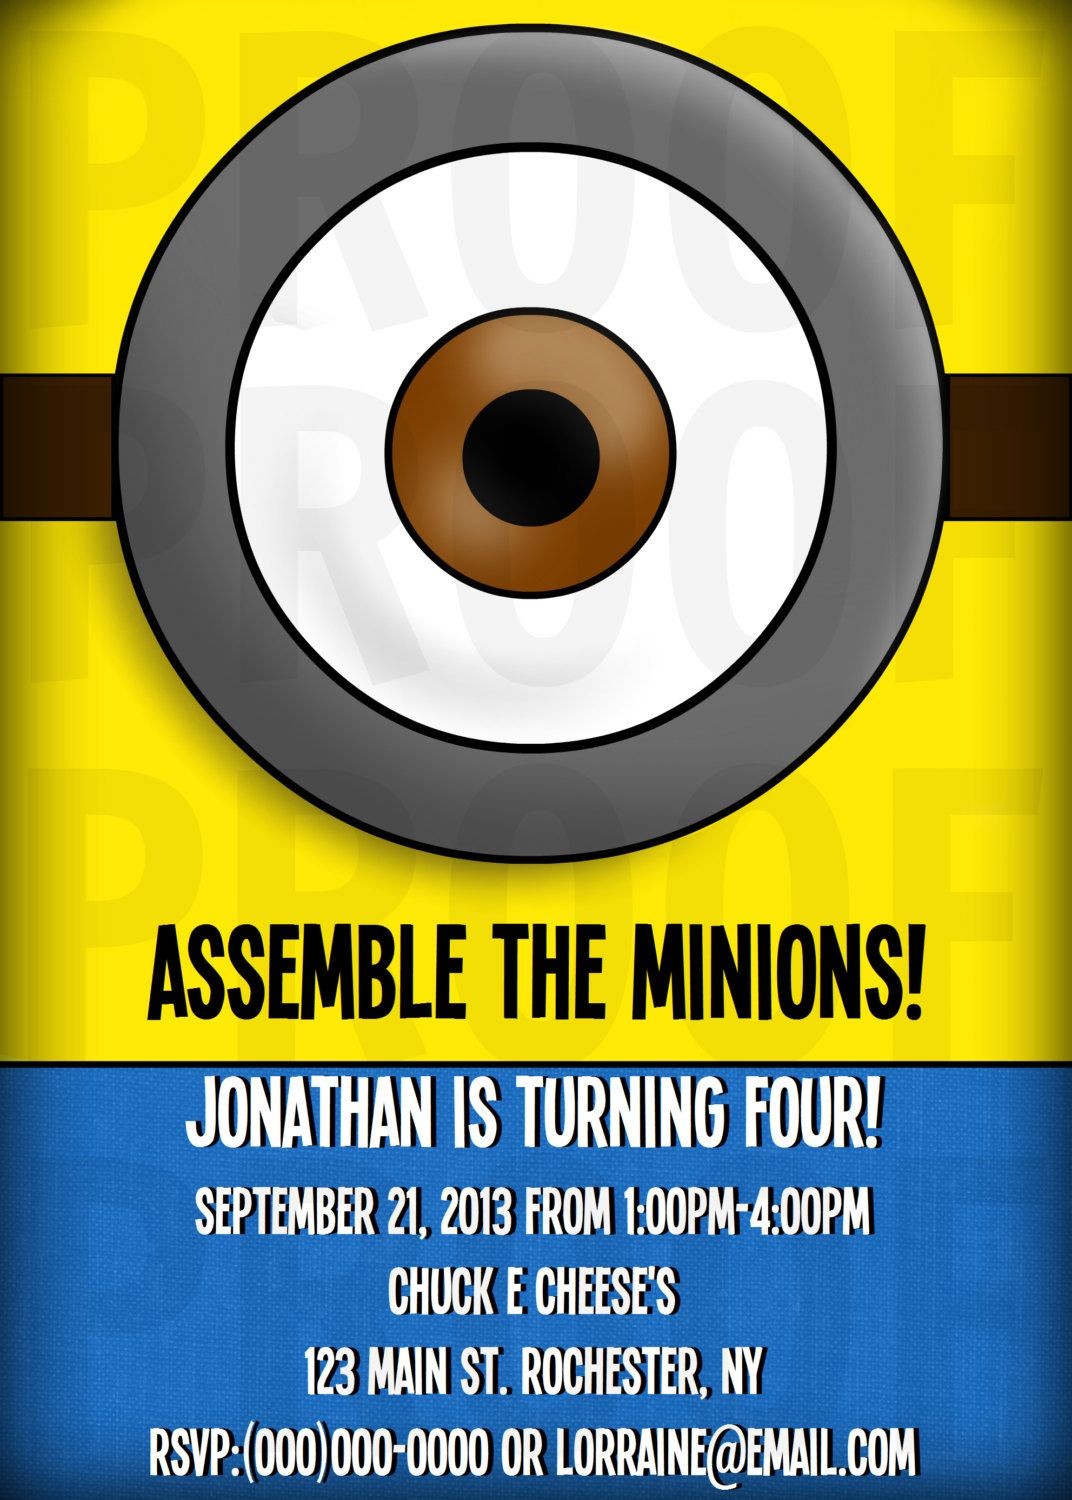 Free Printable Minion Invitations The kids 4th Birthday